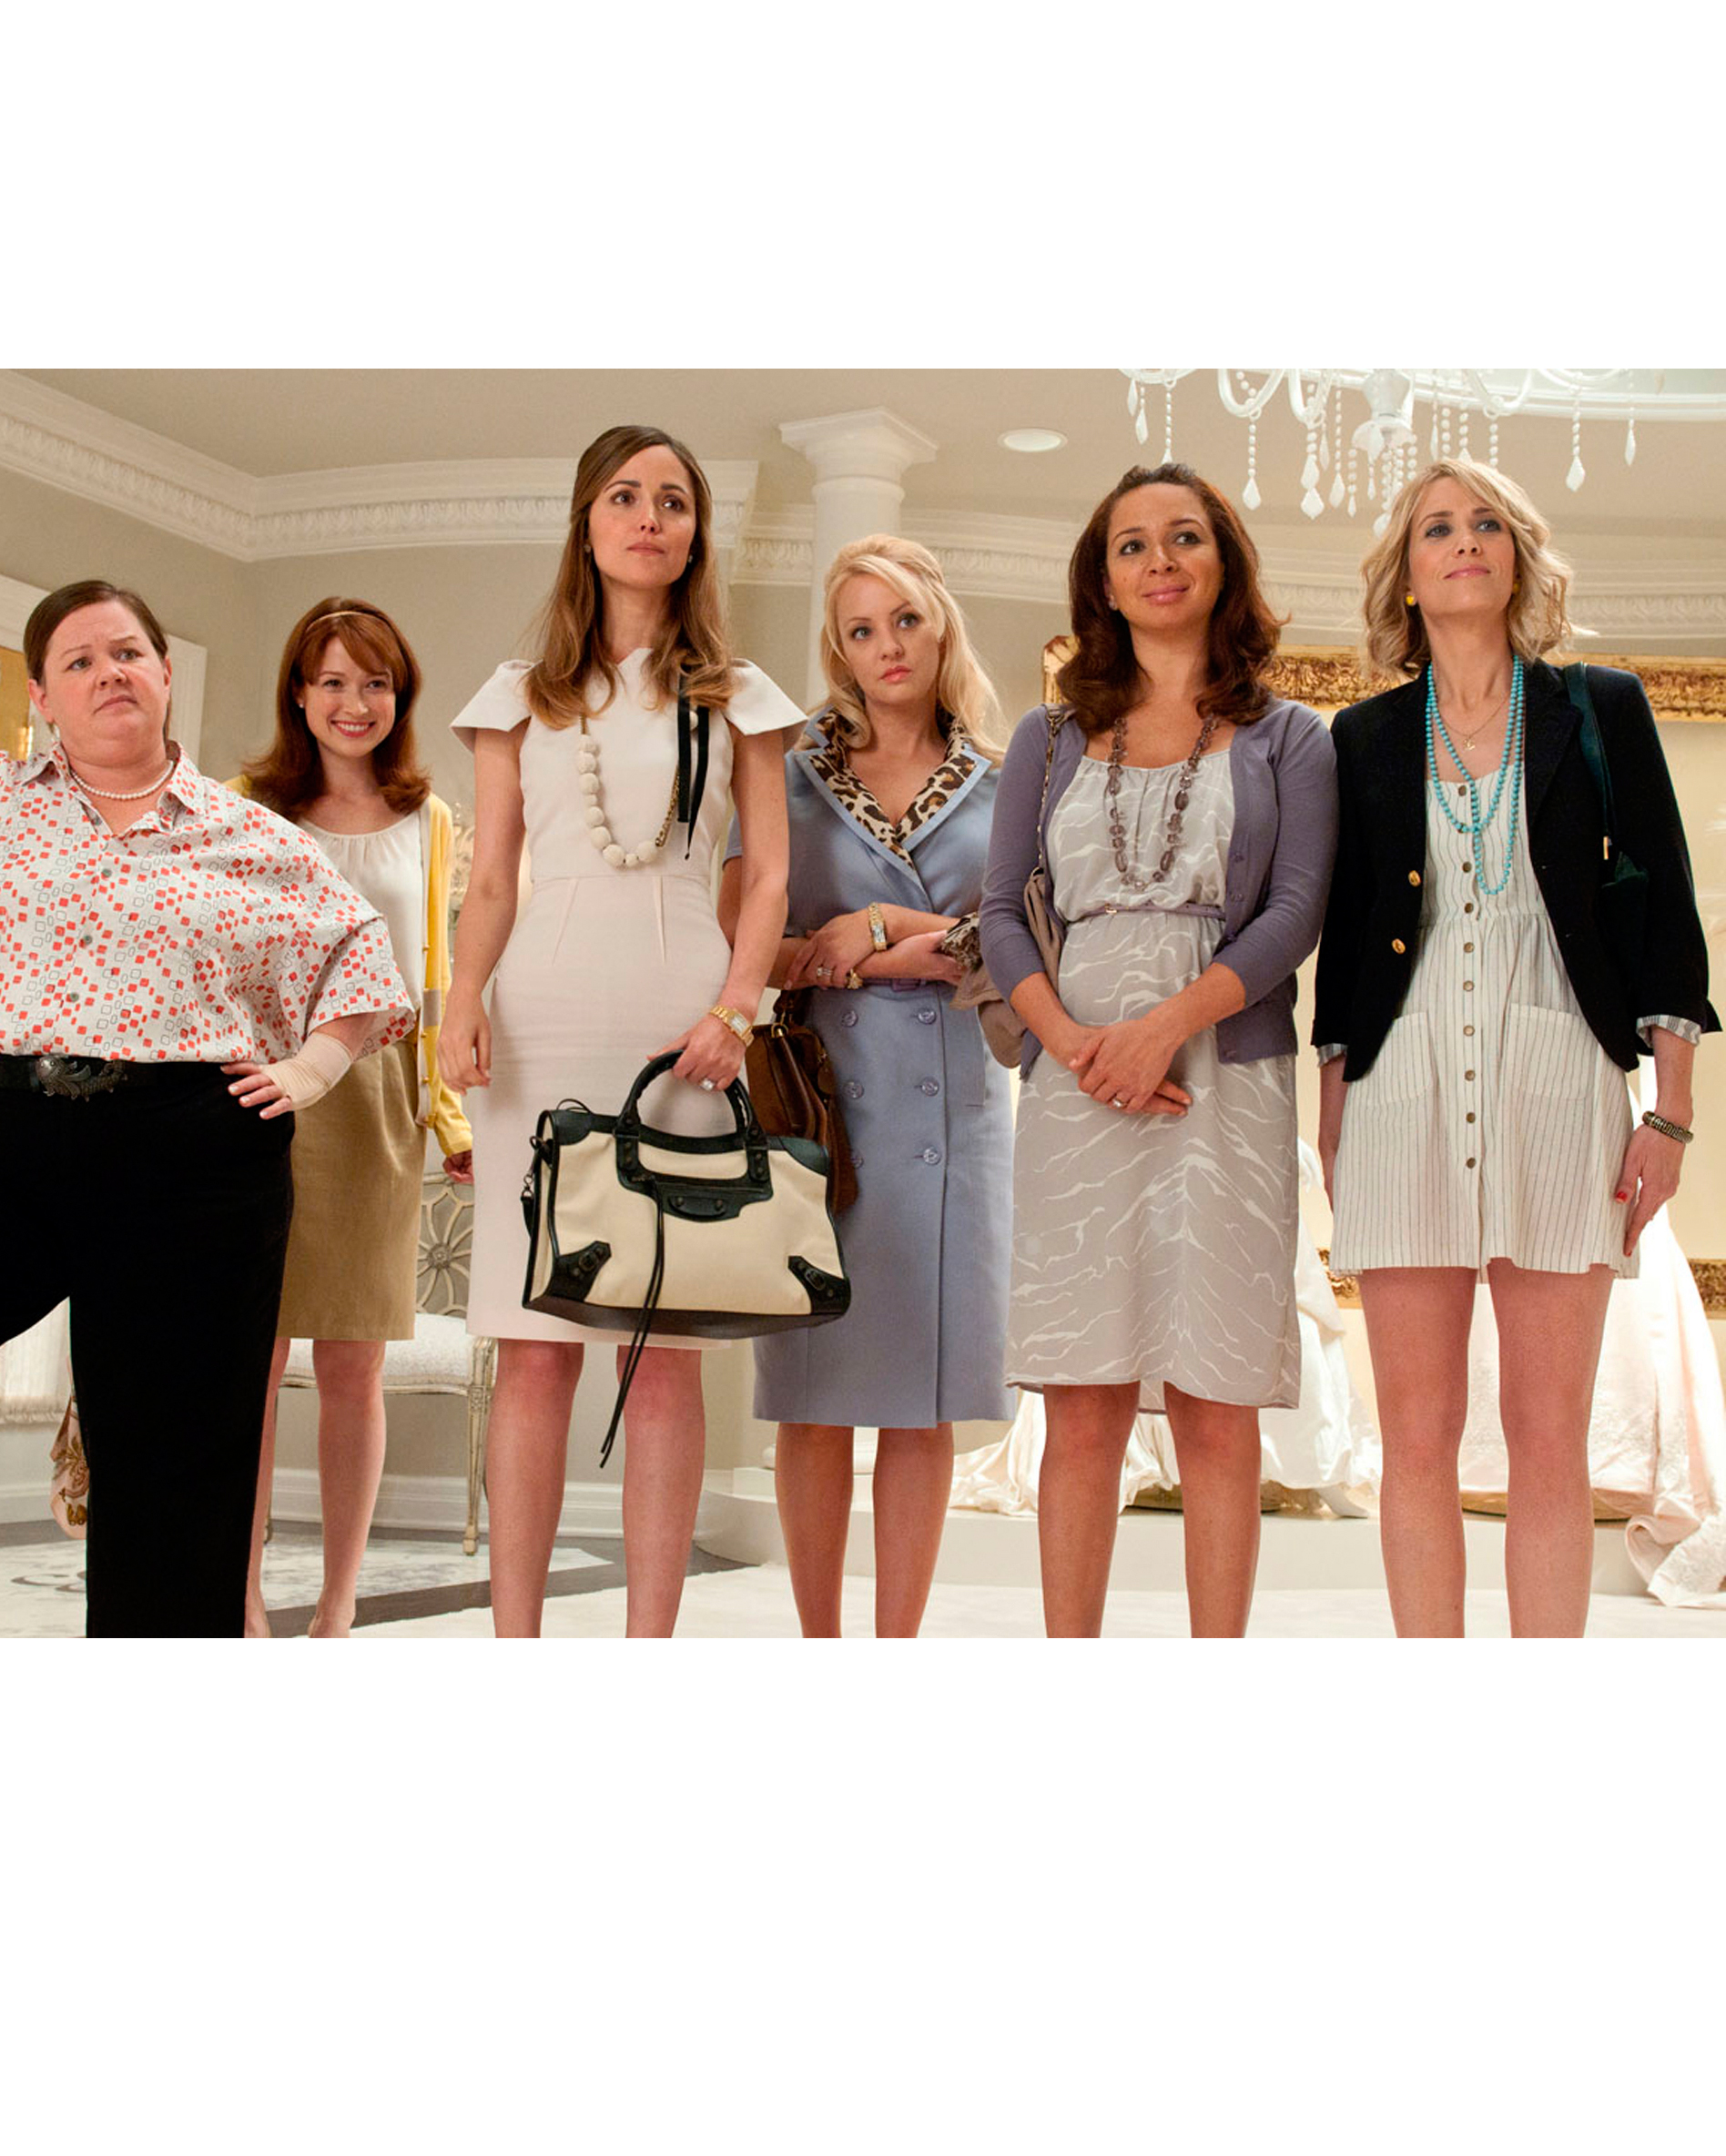 bridesmaids-movie-dress-shopping-1015.jpg